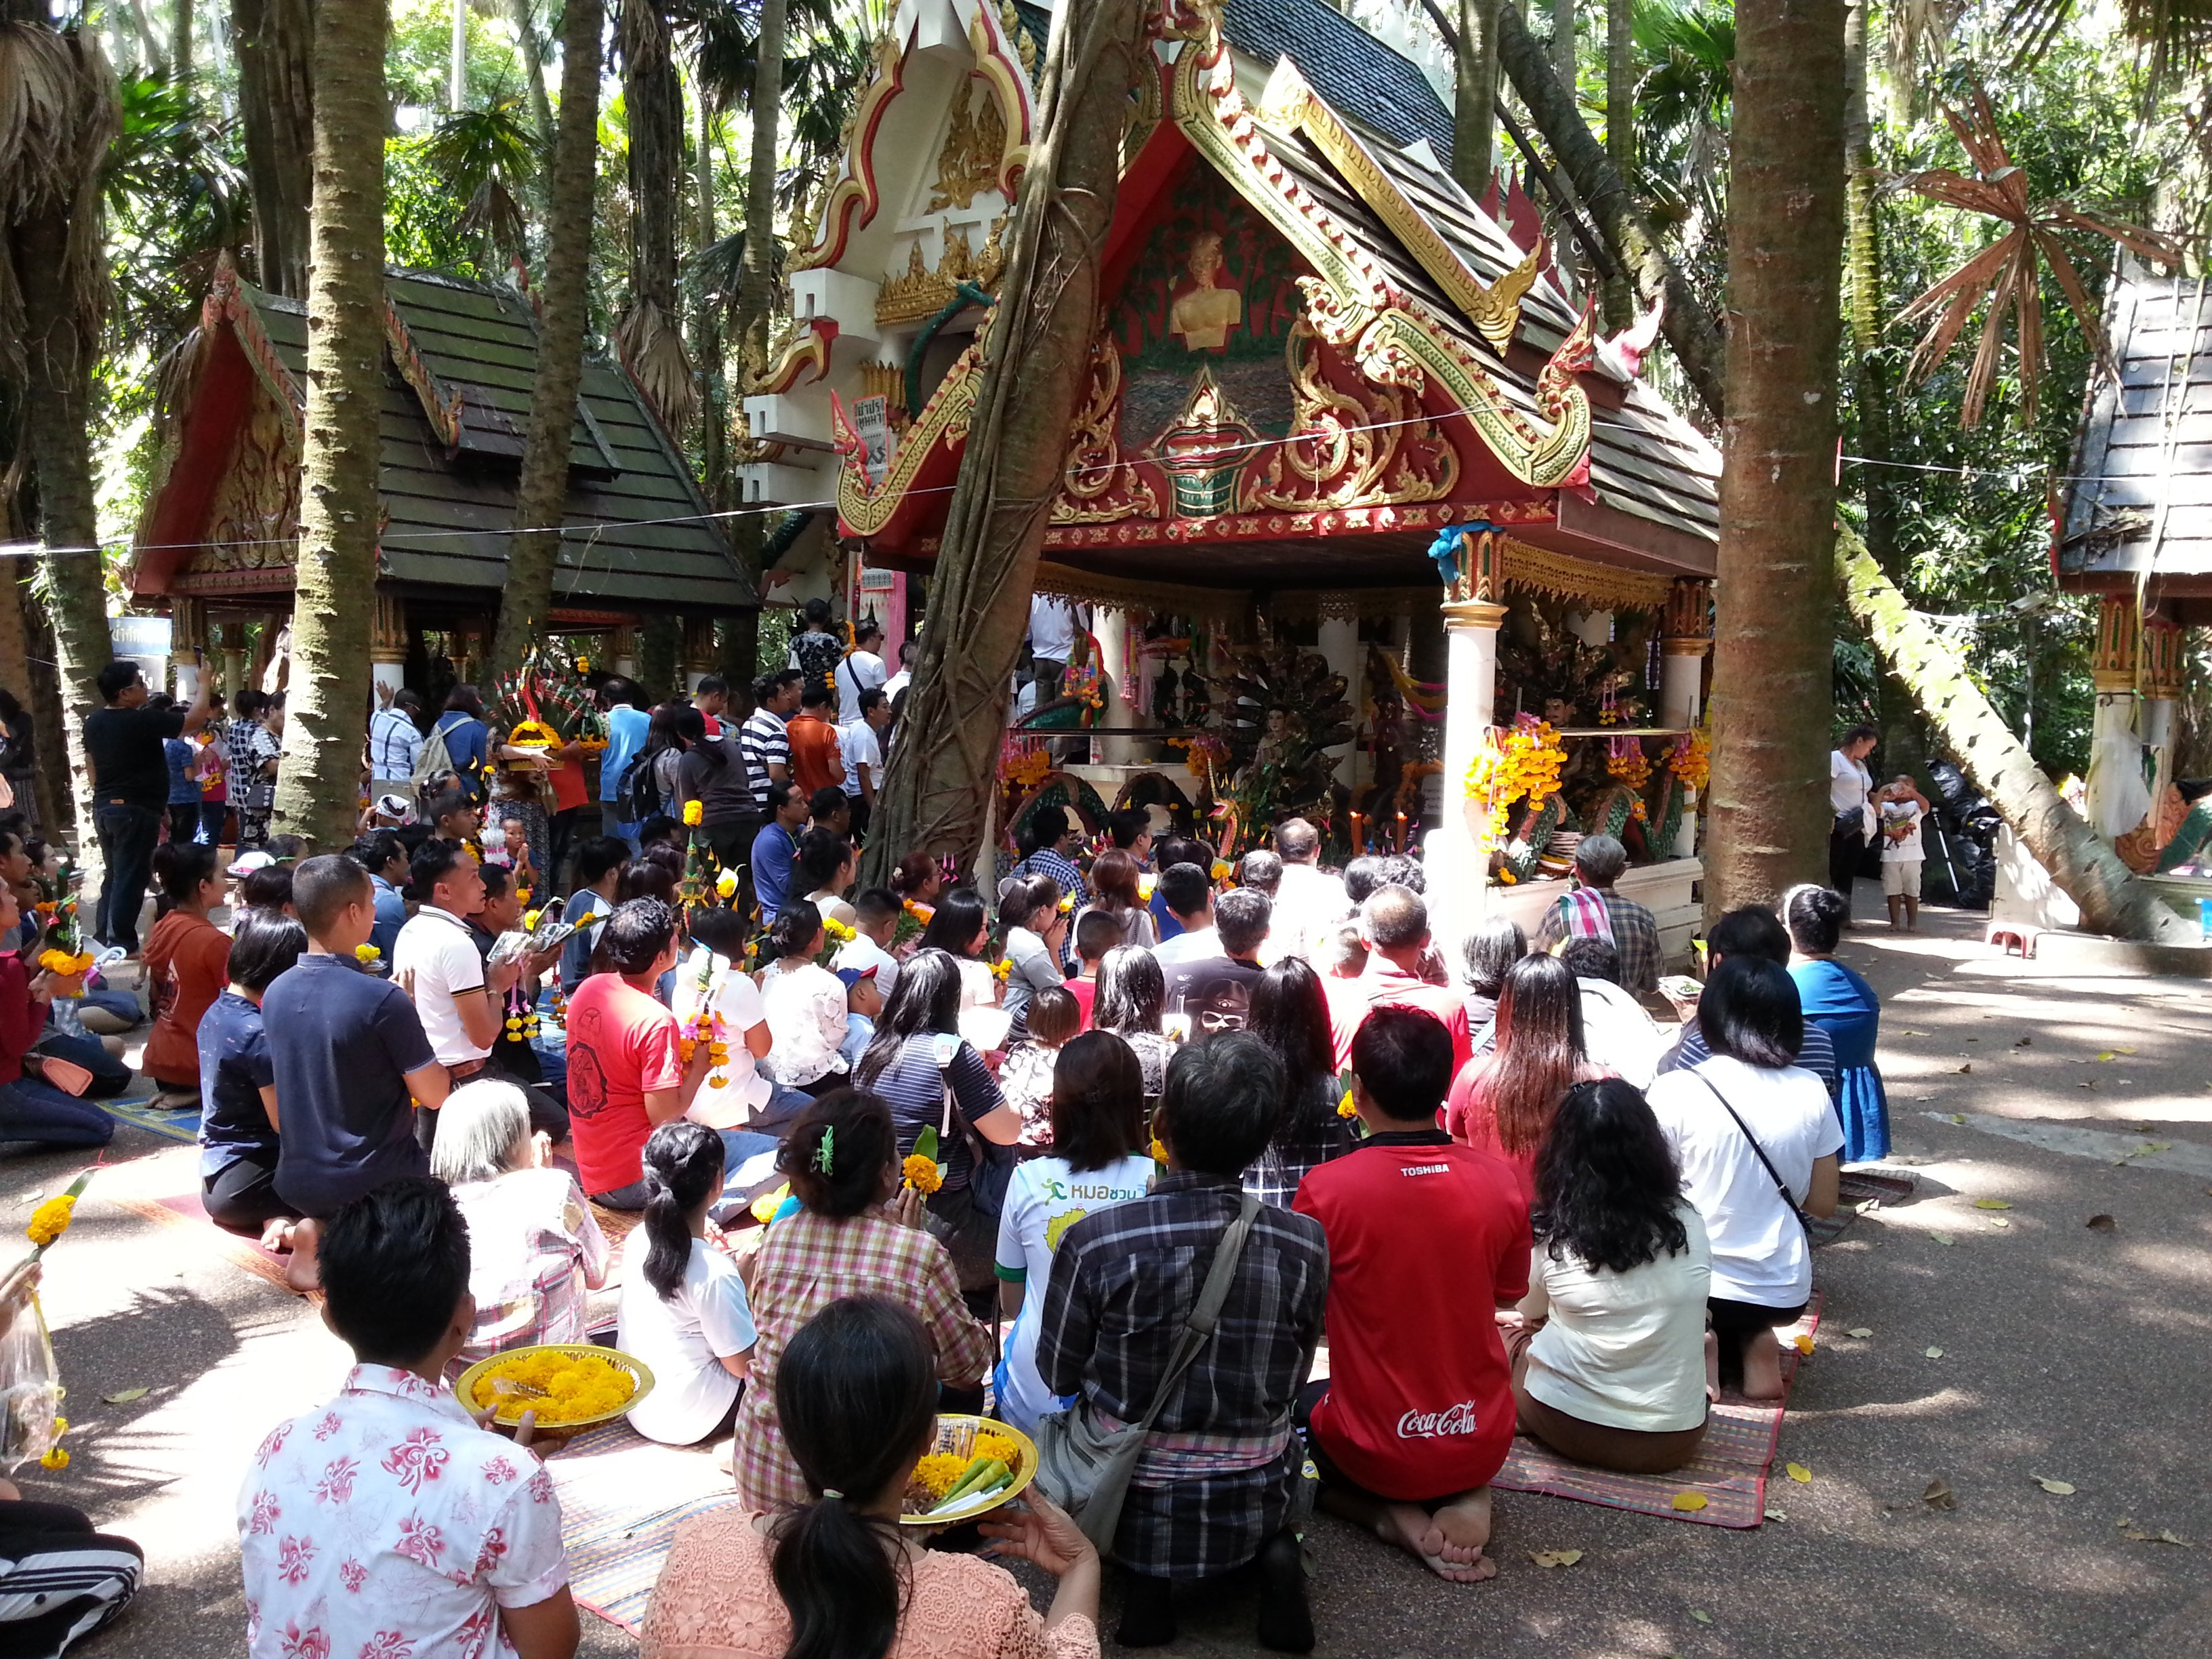 Receiving a blessing at Wat Kham Chanot